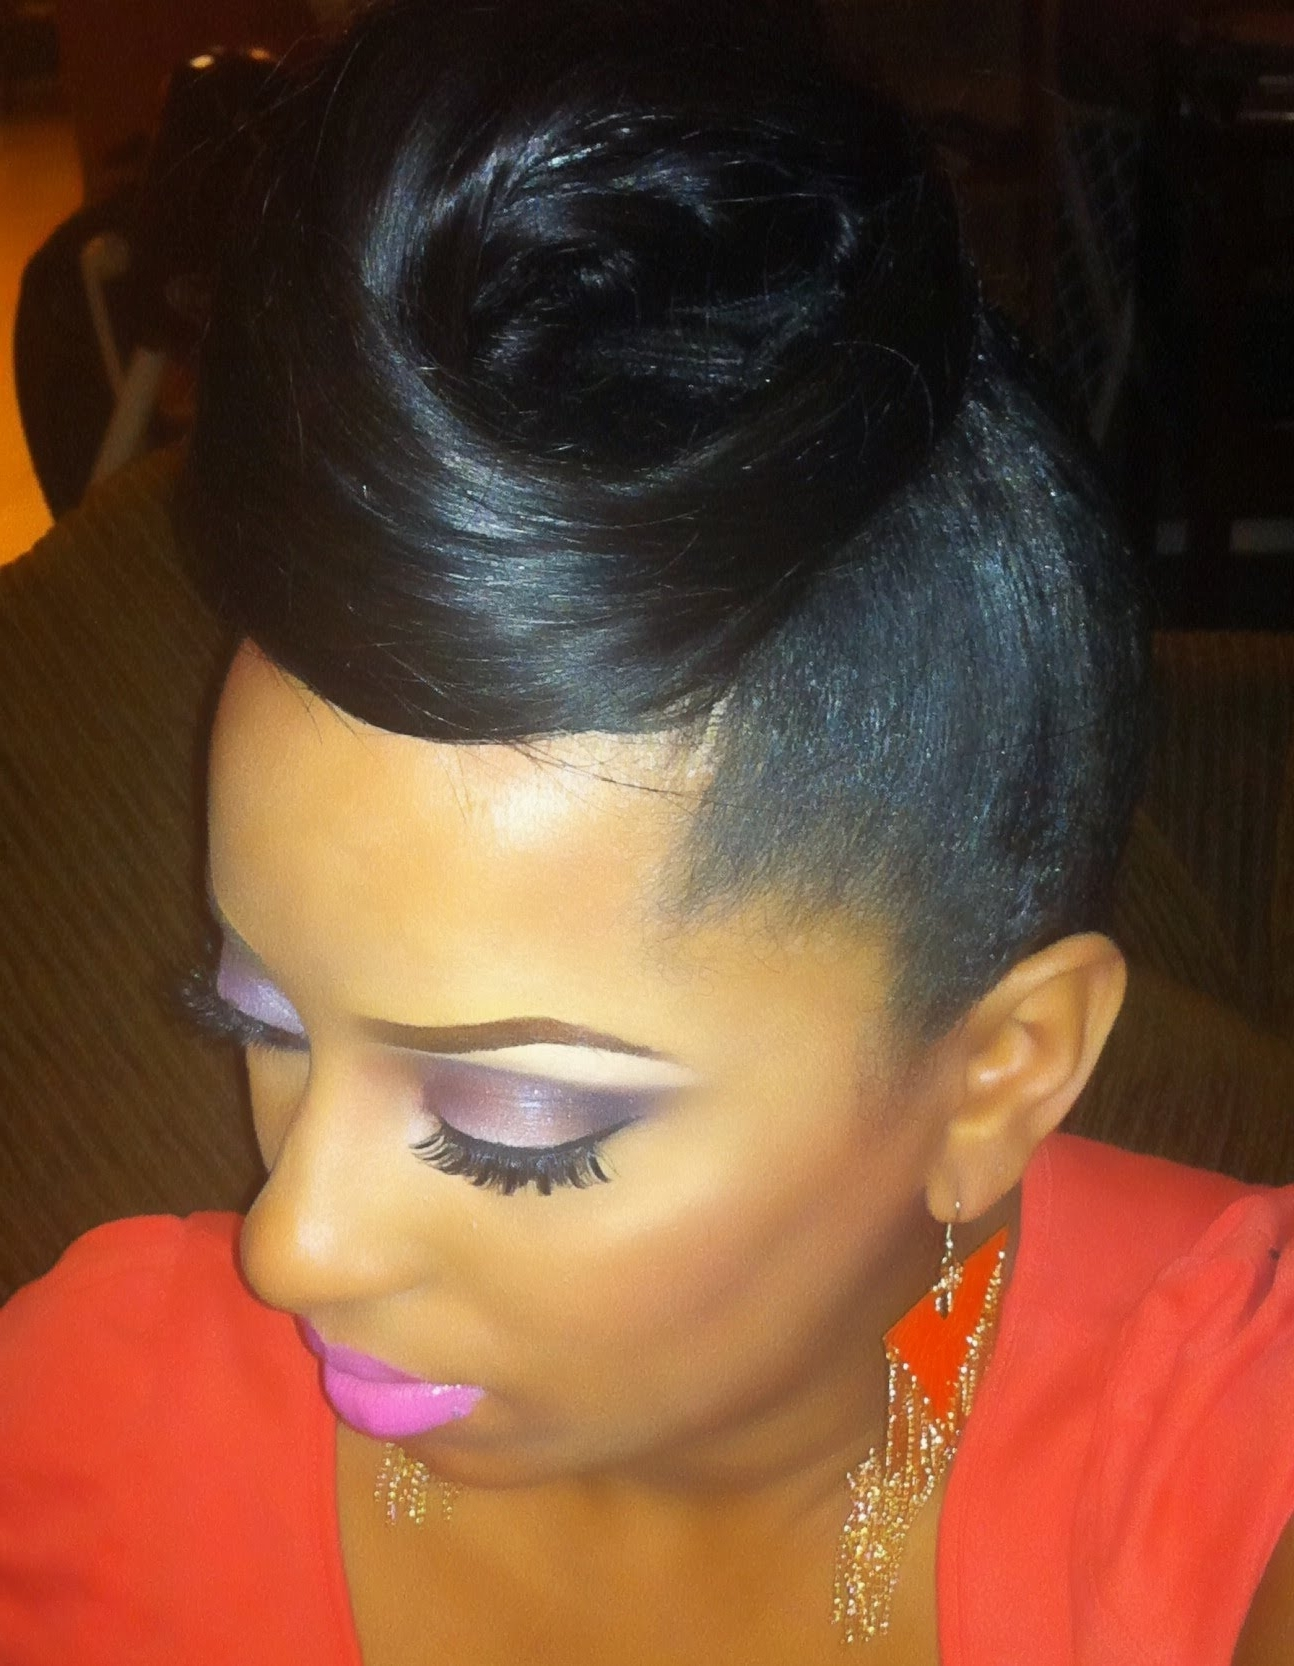 Updo Weave Hairstyles Black Hair Cute With For Women Easy Without With Updo Hairstyles With Bangs For Black Hair (View 15 of 15)